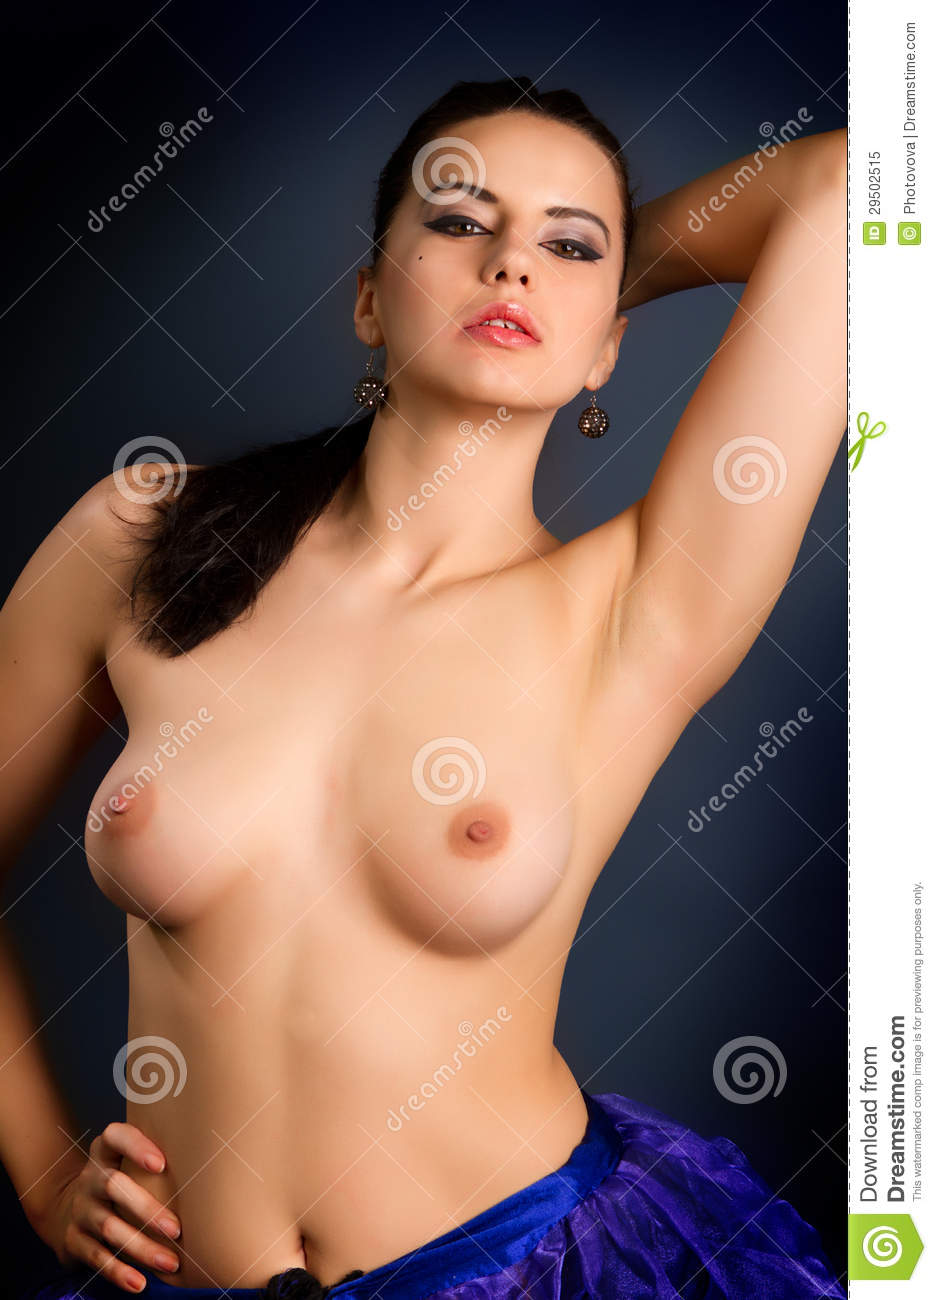 bodies Lady nude